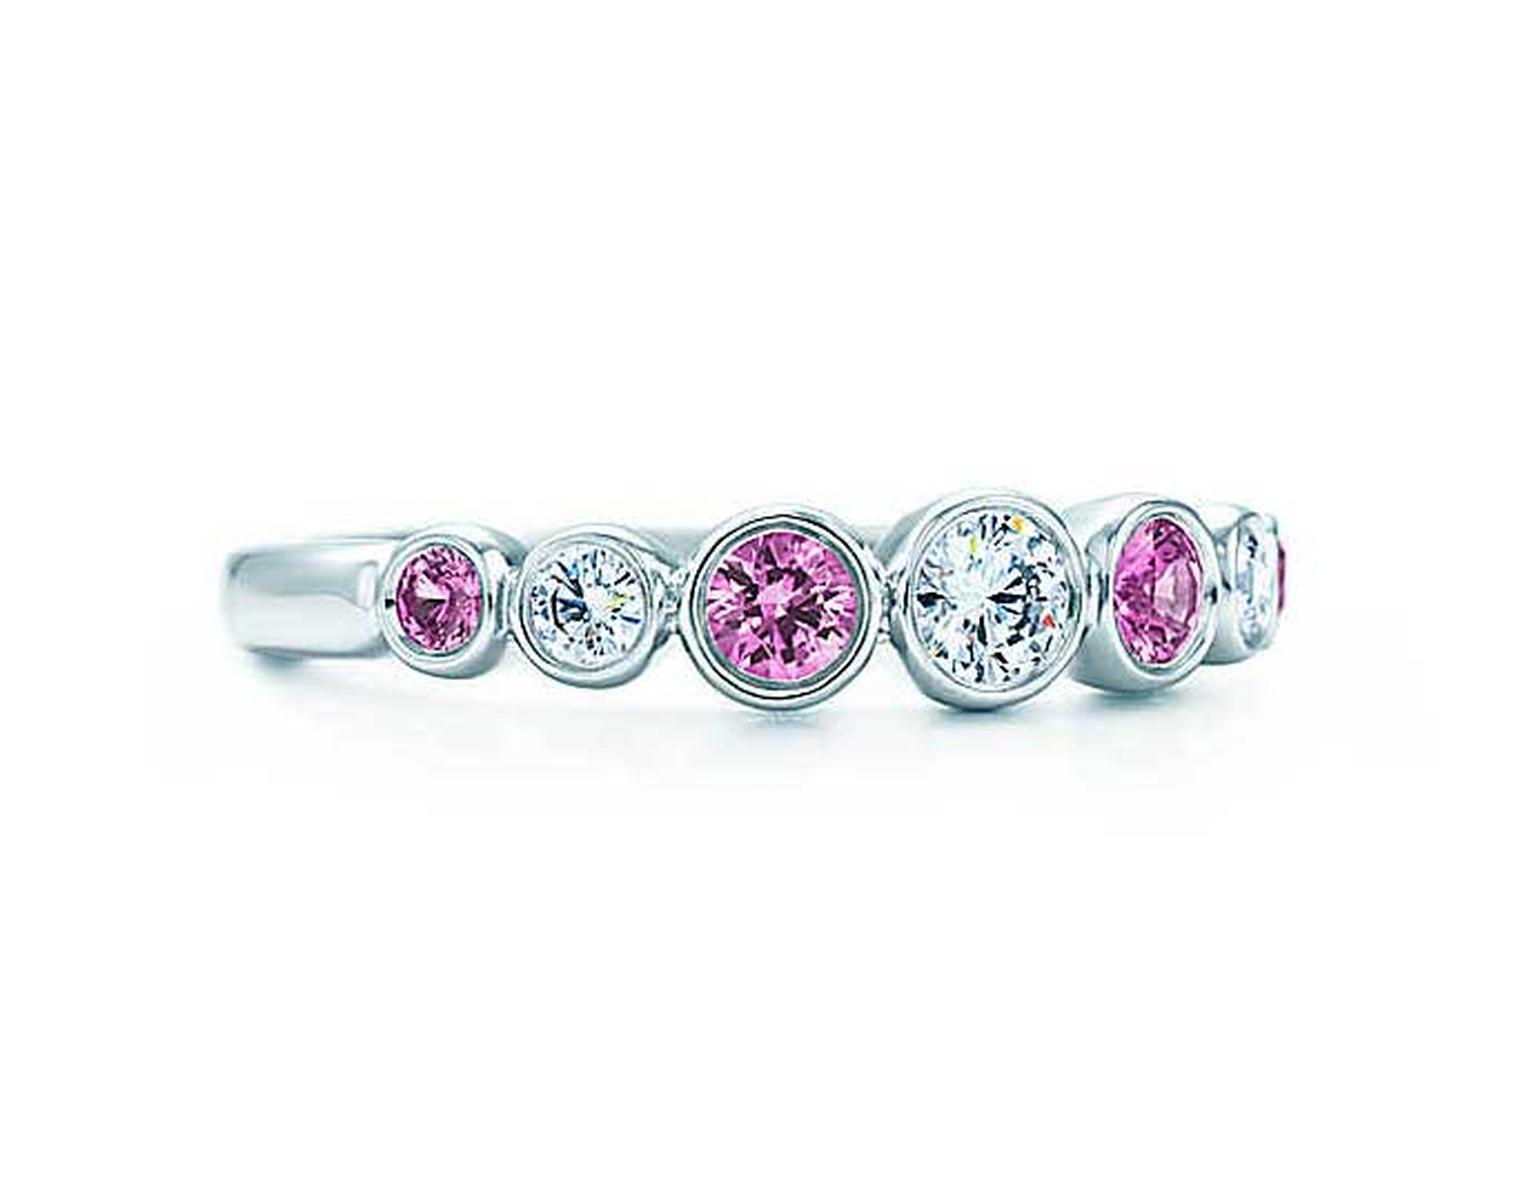 Tiffany Jazz ring in platinum with pink sapphires and diamonds.